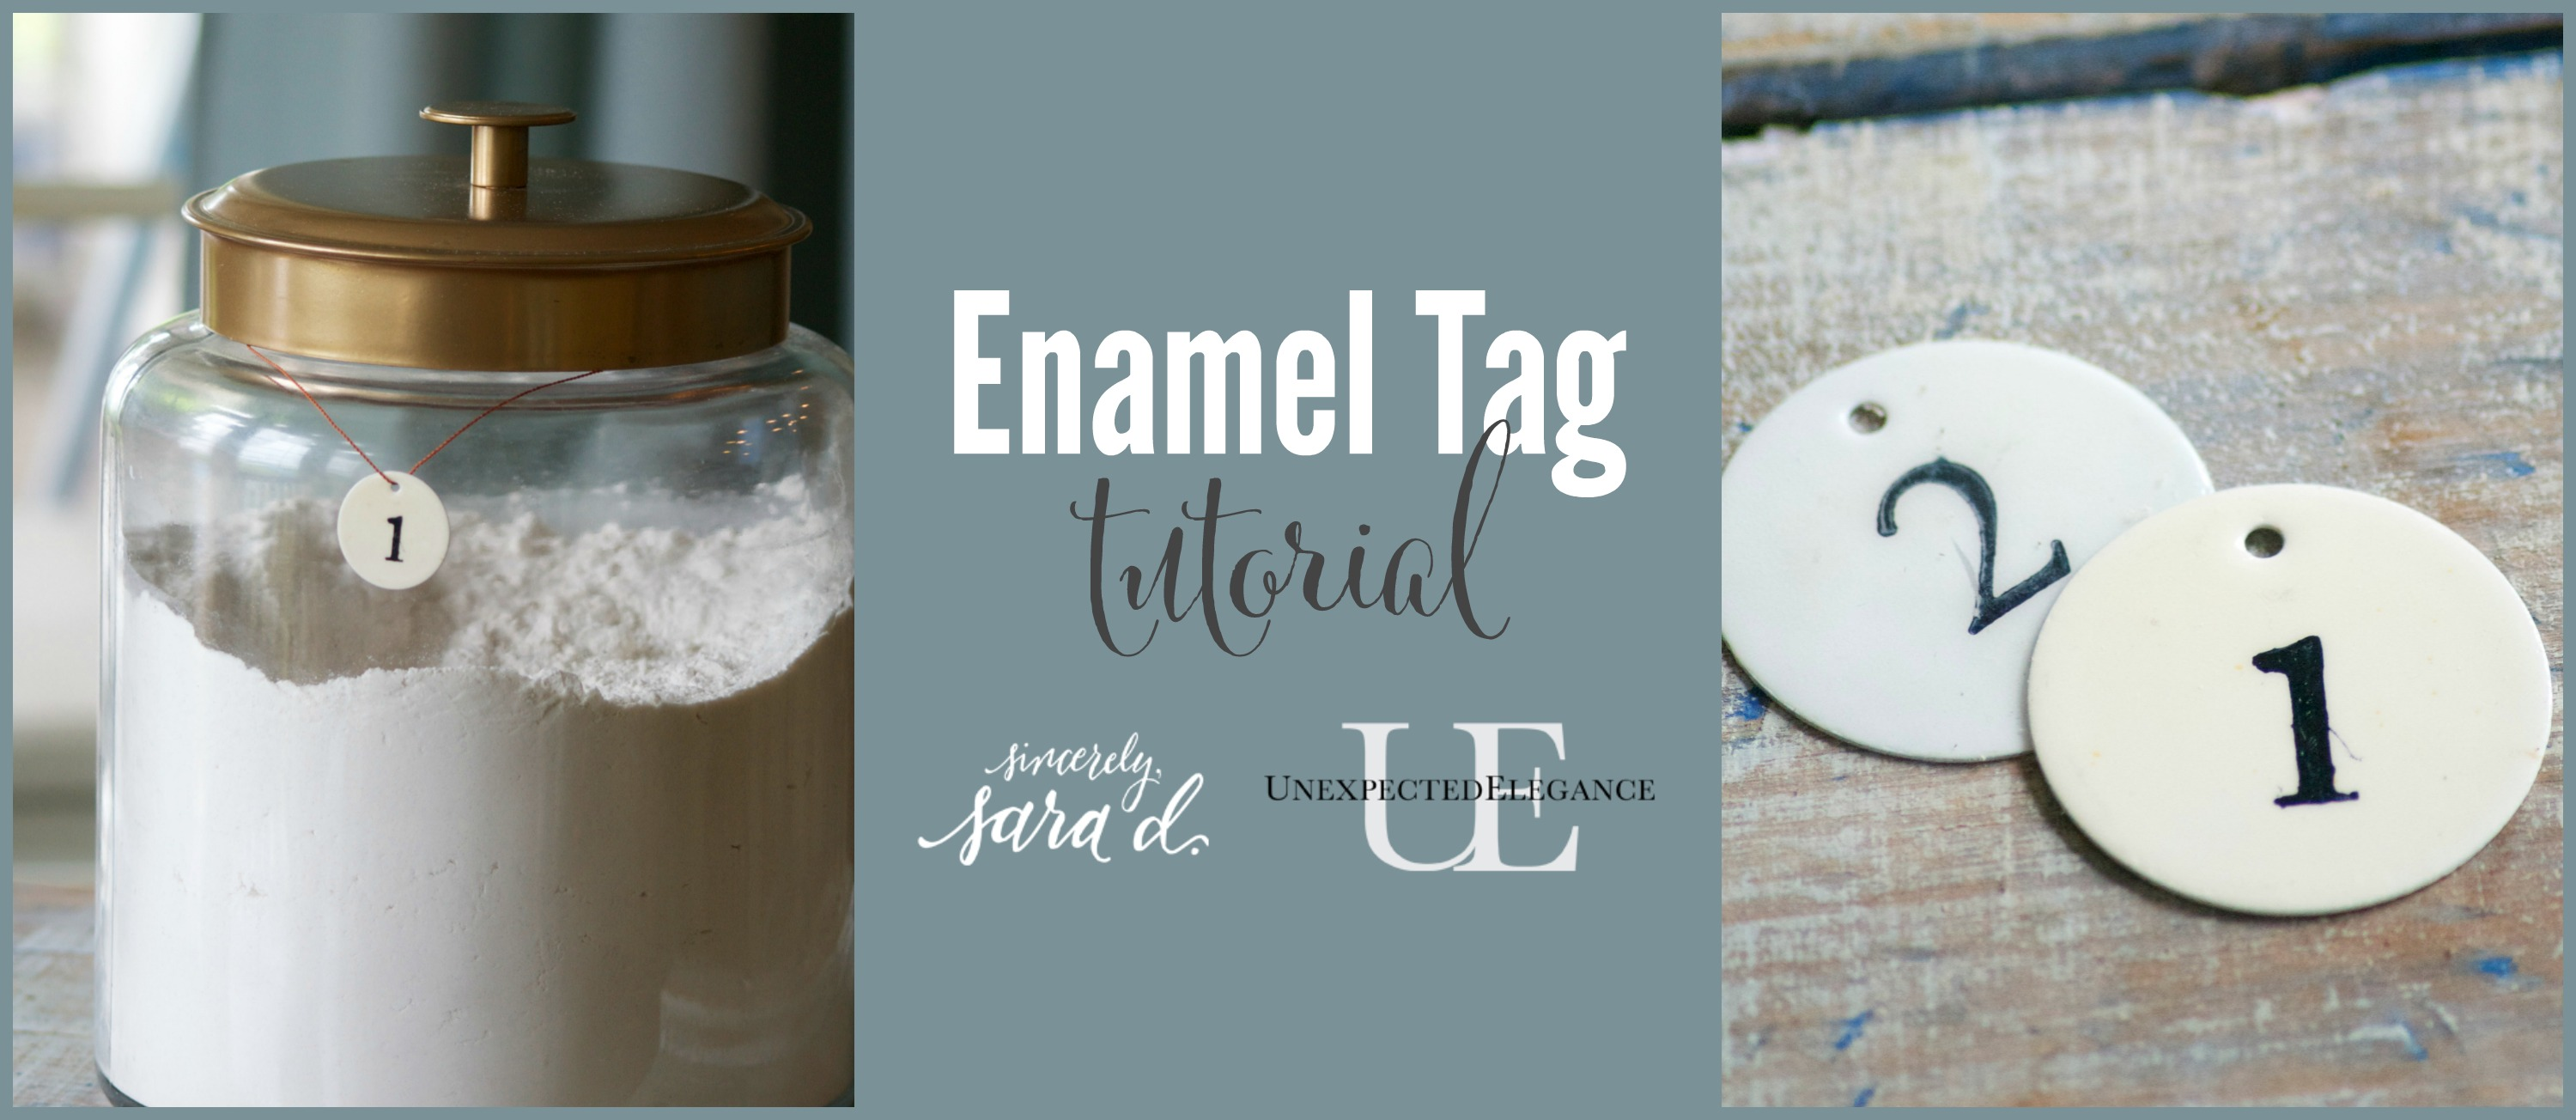 Enamel Tag Tutorial- FB